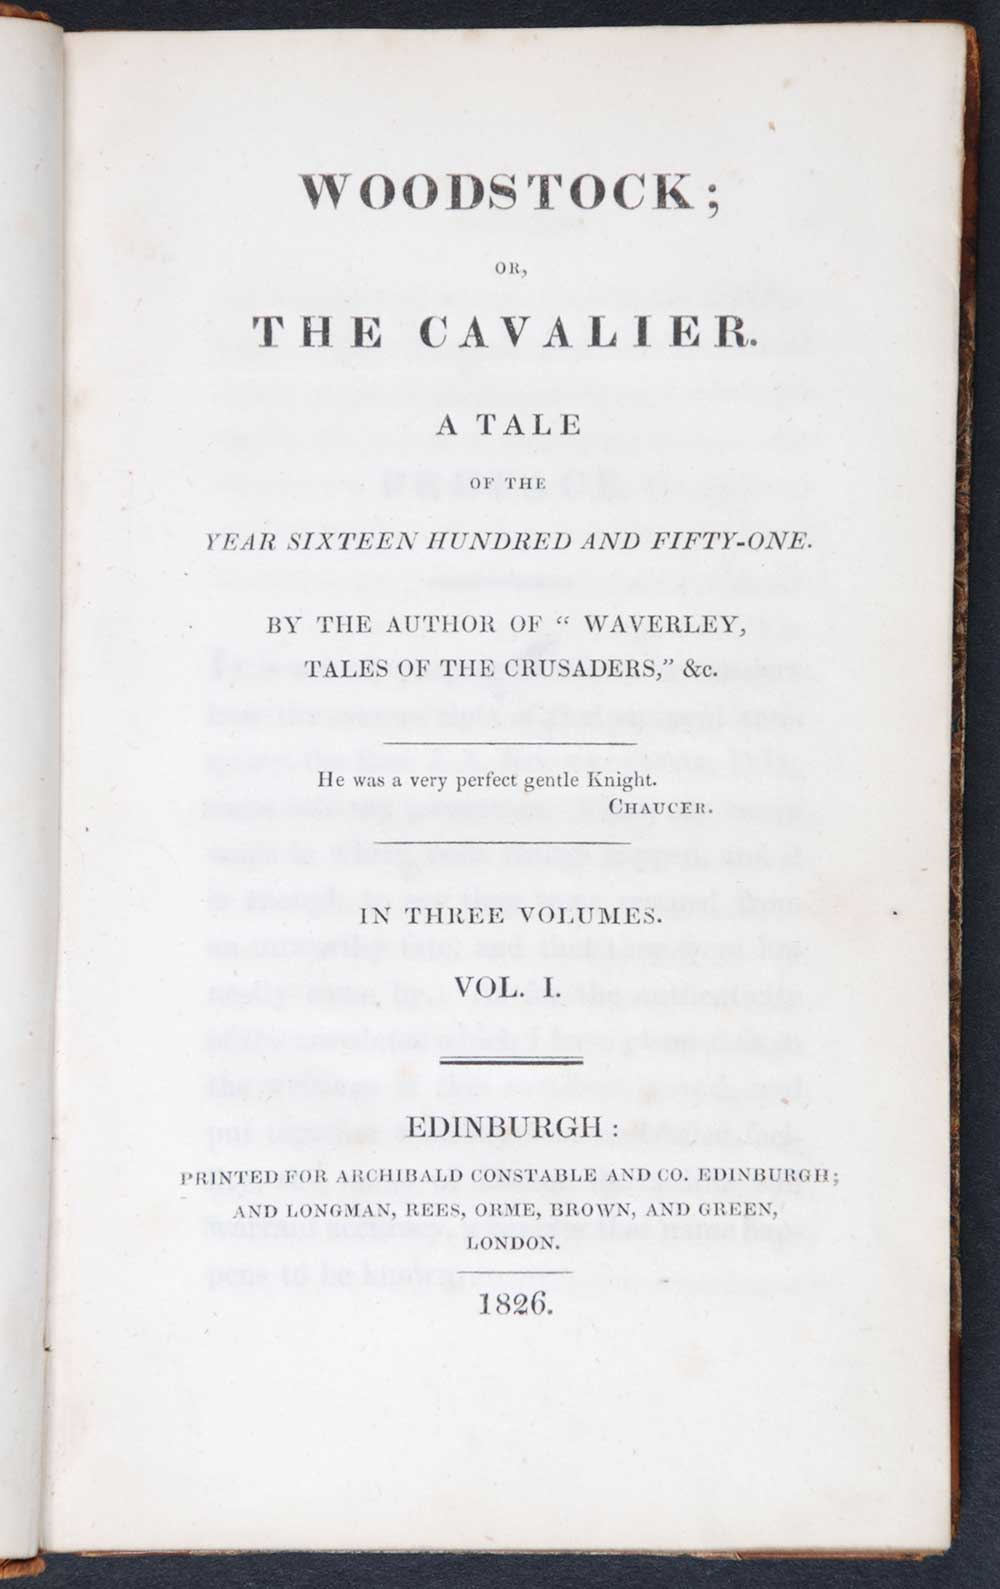 [Sir Walter Scott]. <em>Woodstock, or, The Cavalier: a tale of the year sixteen hundred and fifty-one.</em> [1st edition]. Edinburgh: Printed for Archibald Constable and Co., Edinburgh; and Longman, Rees, Orme, Brown and Green, London, 1826. Three volumes; Vol. 1 displayed.